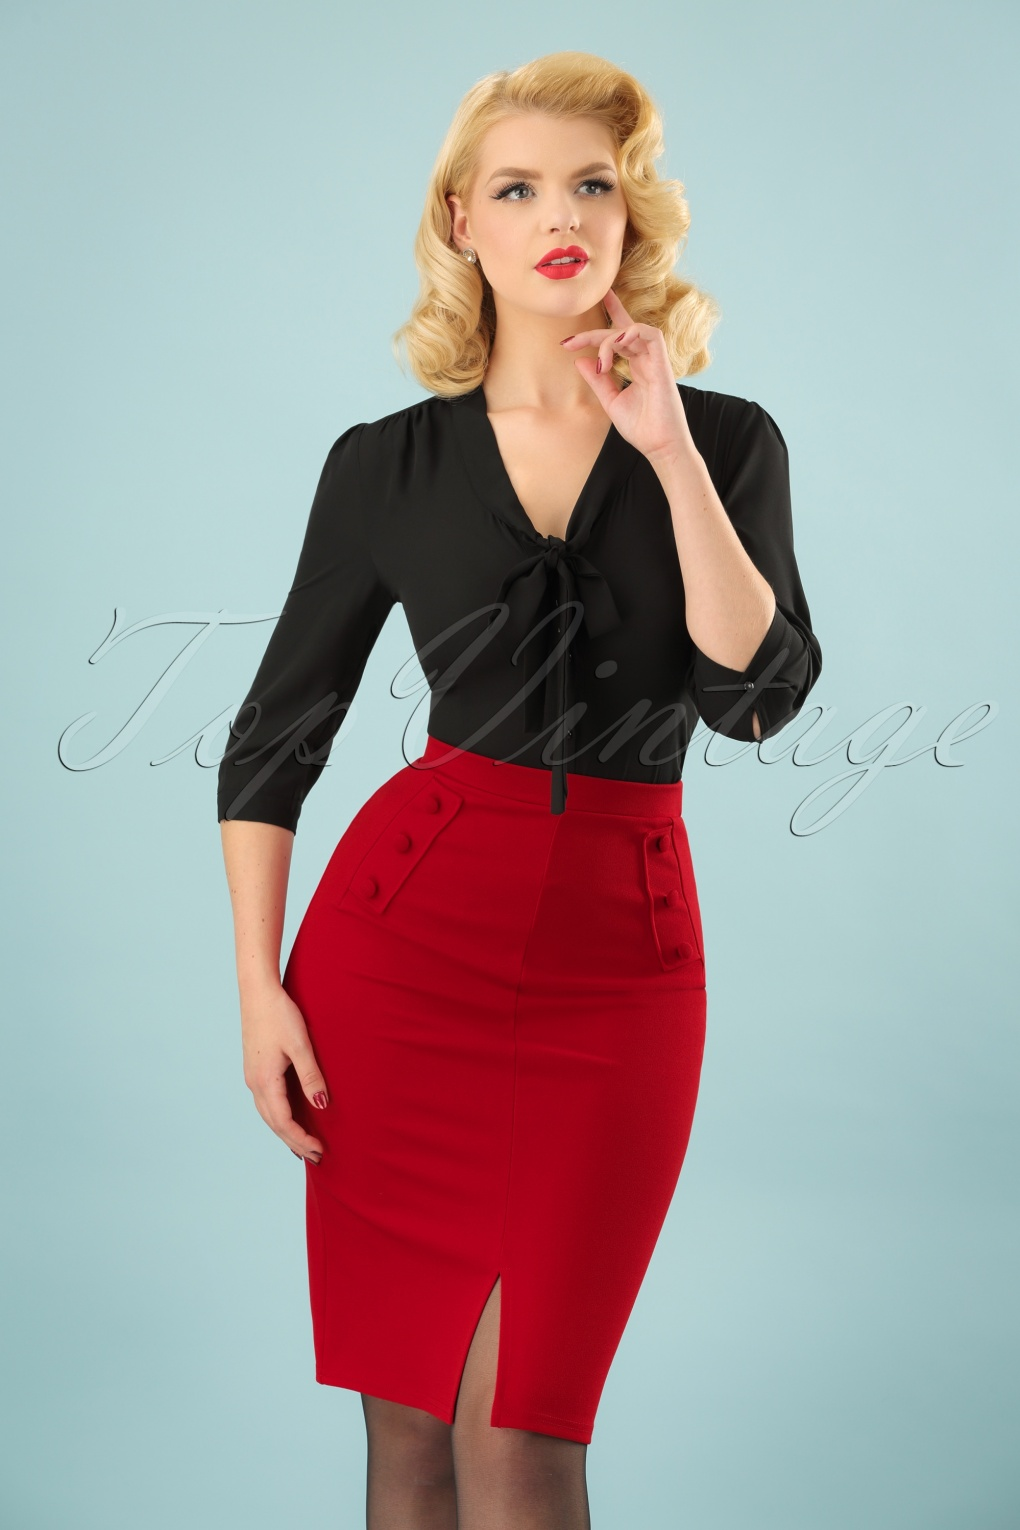 Shop for red pencil skirt online at Target. Free shipping on purchases over $35 and 5% Off W/ REDcard· Same Day Store Pick-Up· Free Shipping $35+· Free ReturnsStyles: Jackets, Active wear, Maternity, Dresses, Jeans, Pants, Shirts, Shorts, Skirts.